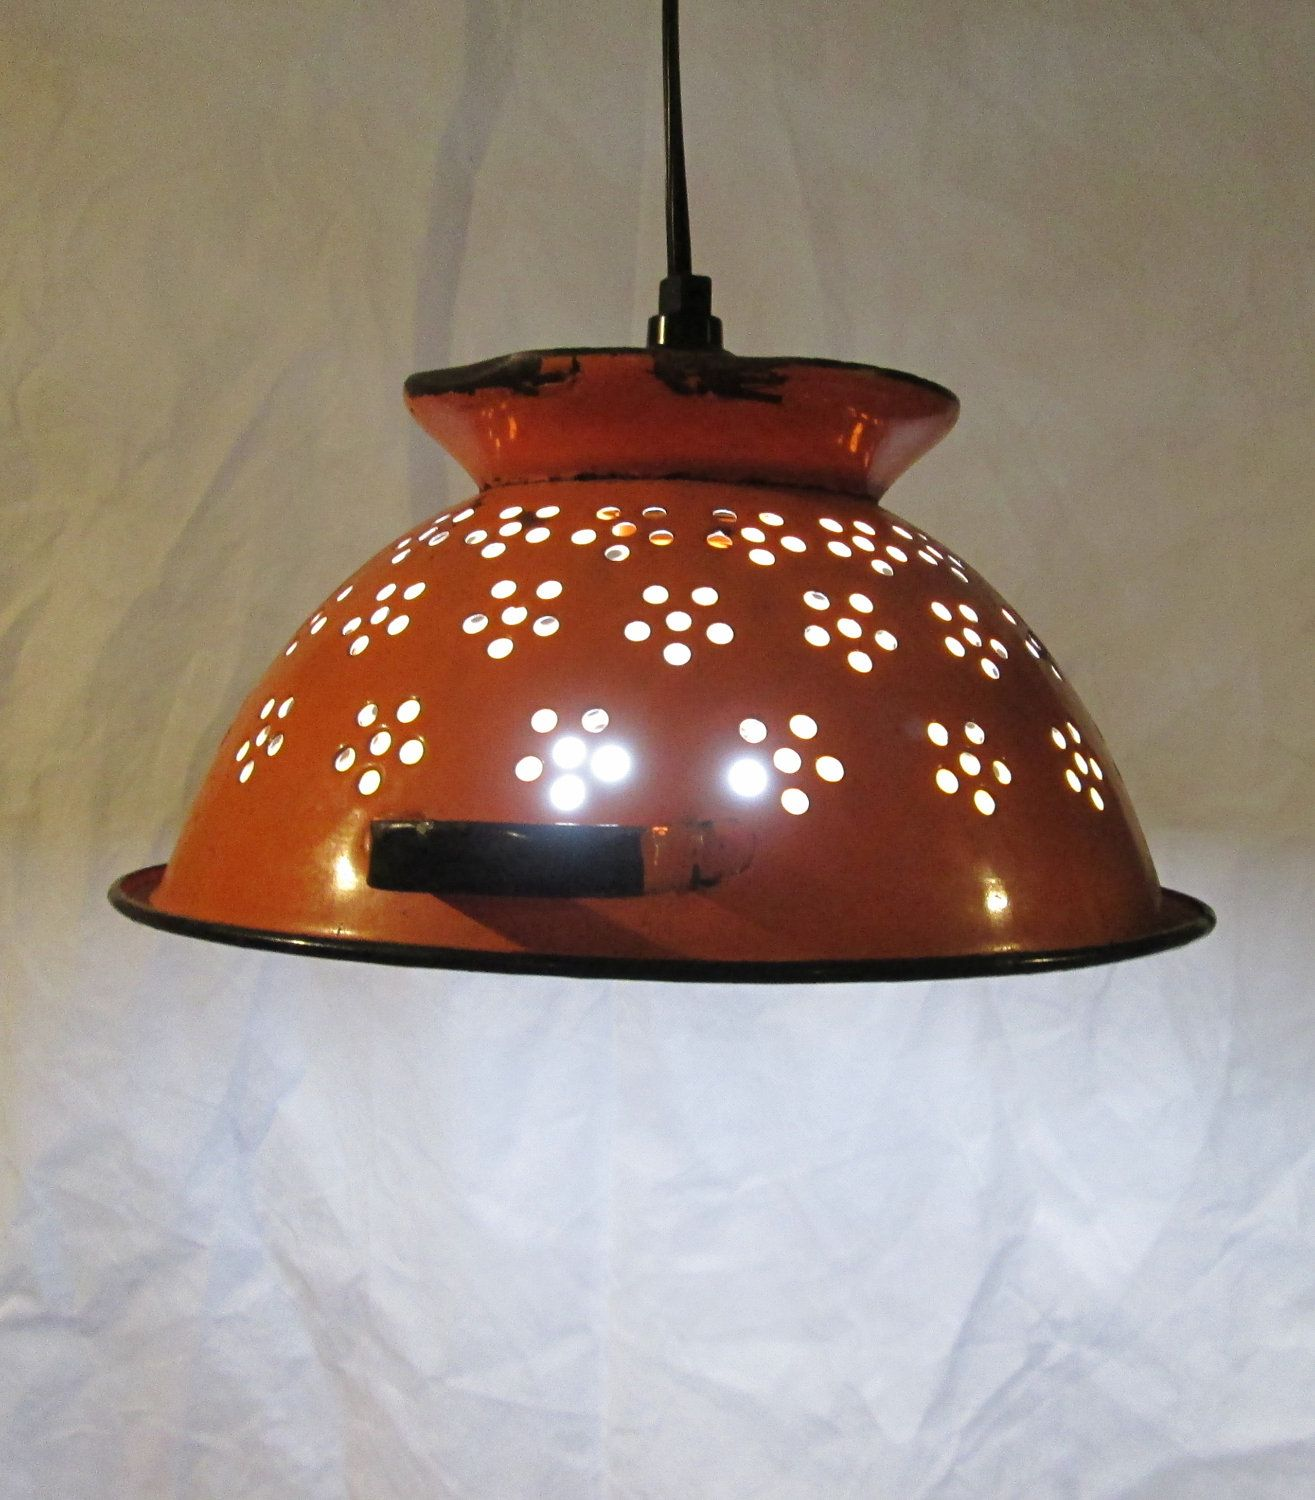 Vintage colandar, upcycled pendant light, repurposed hanging ...